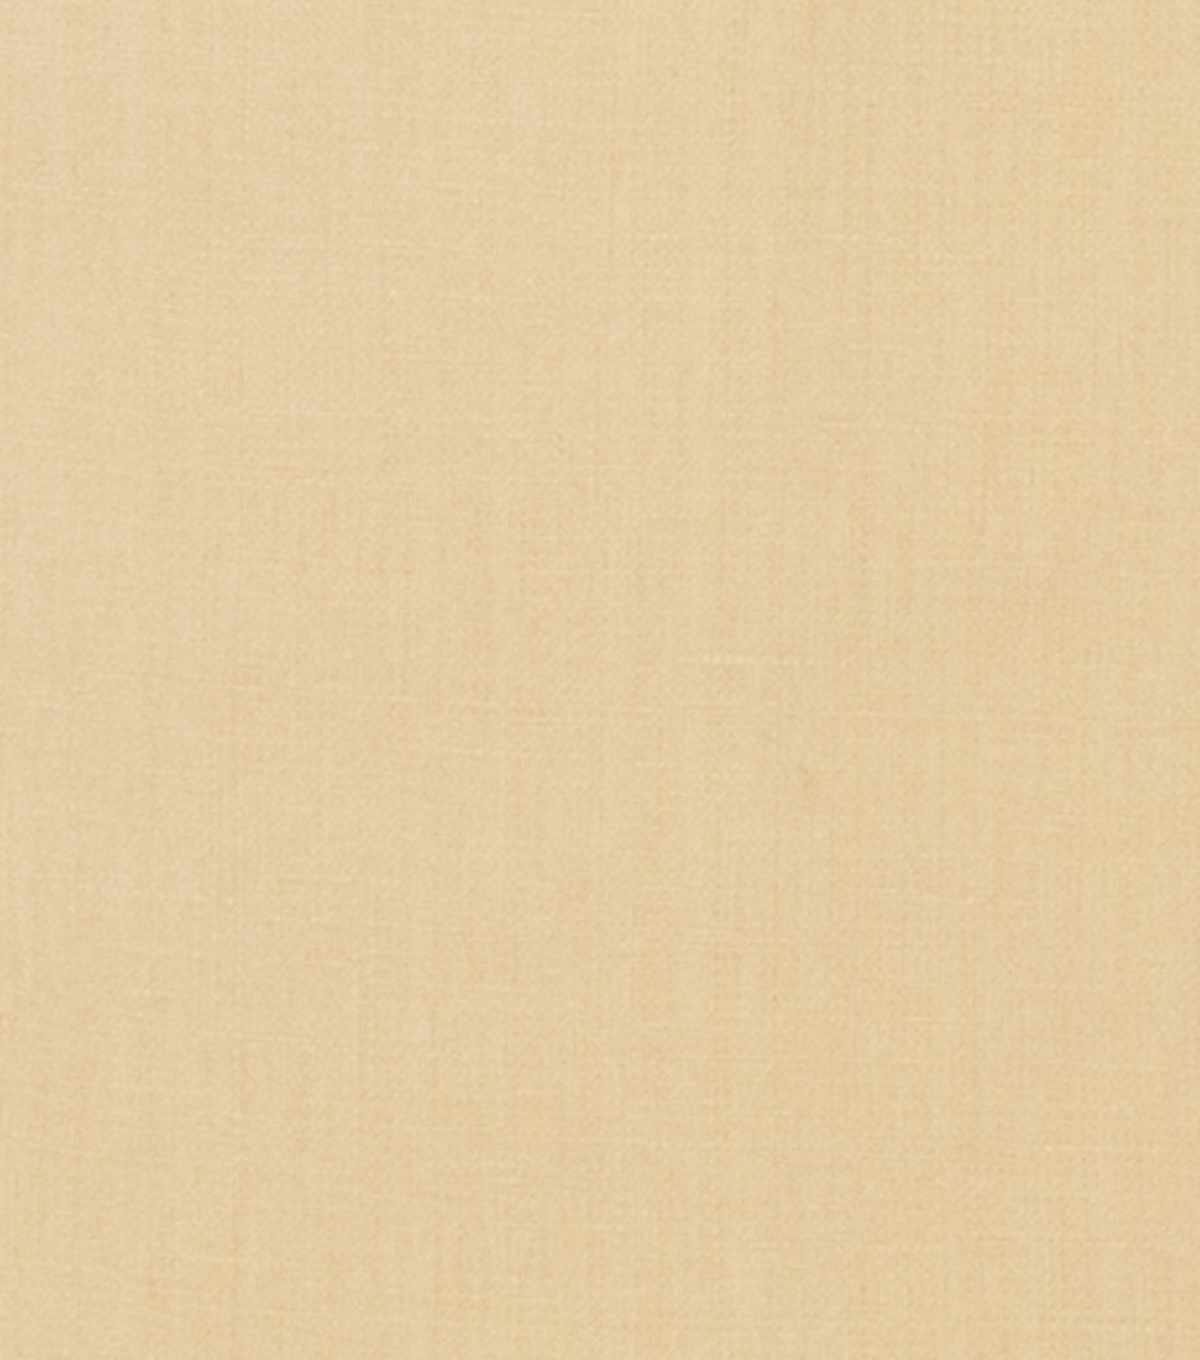 Home Decor 8\u0022x8\u0022 Fabric Swatch-Signature Series Rockford Linen Buttercream